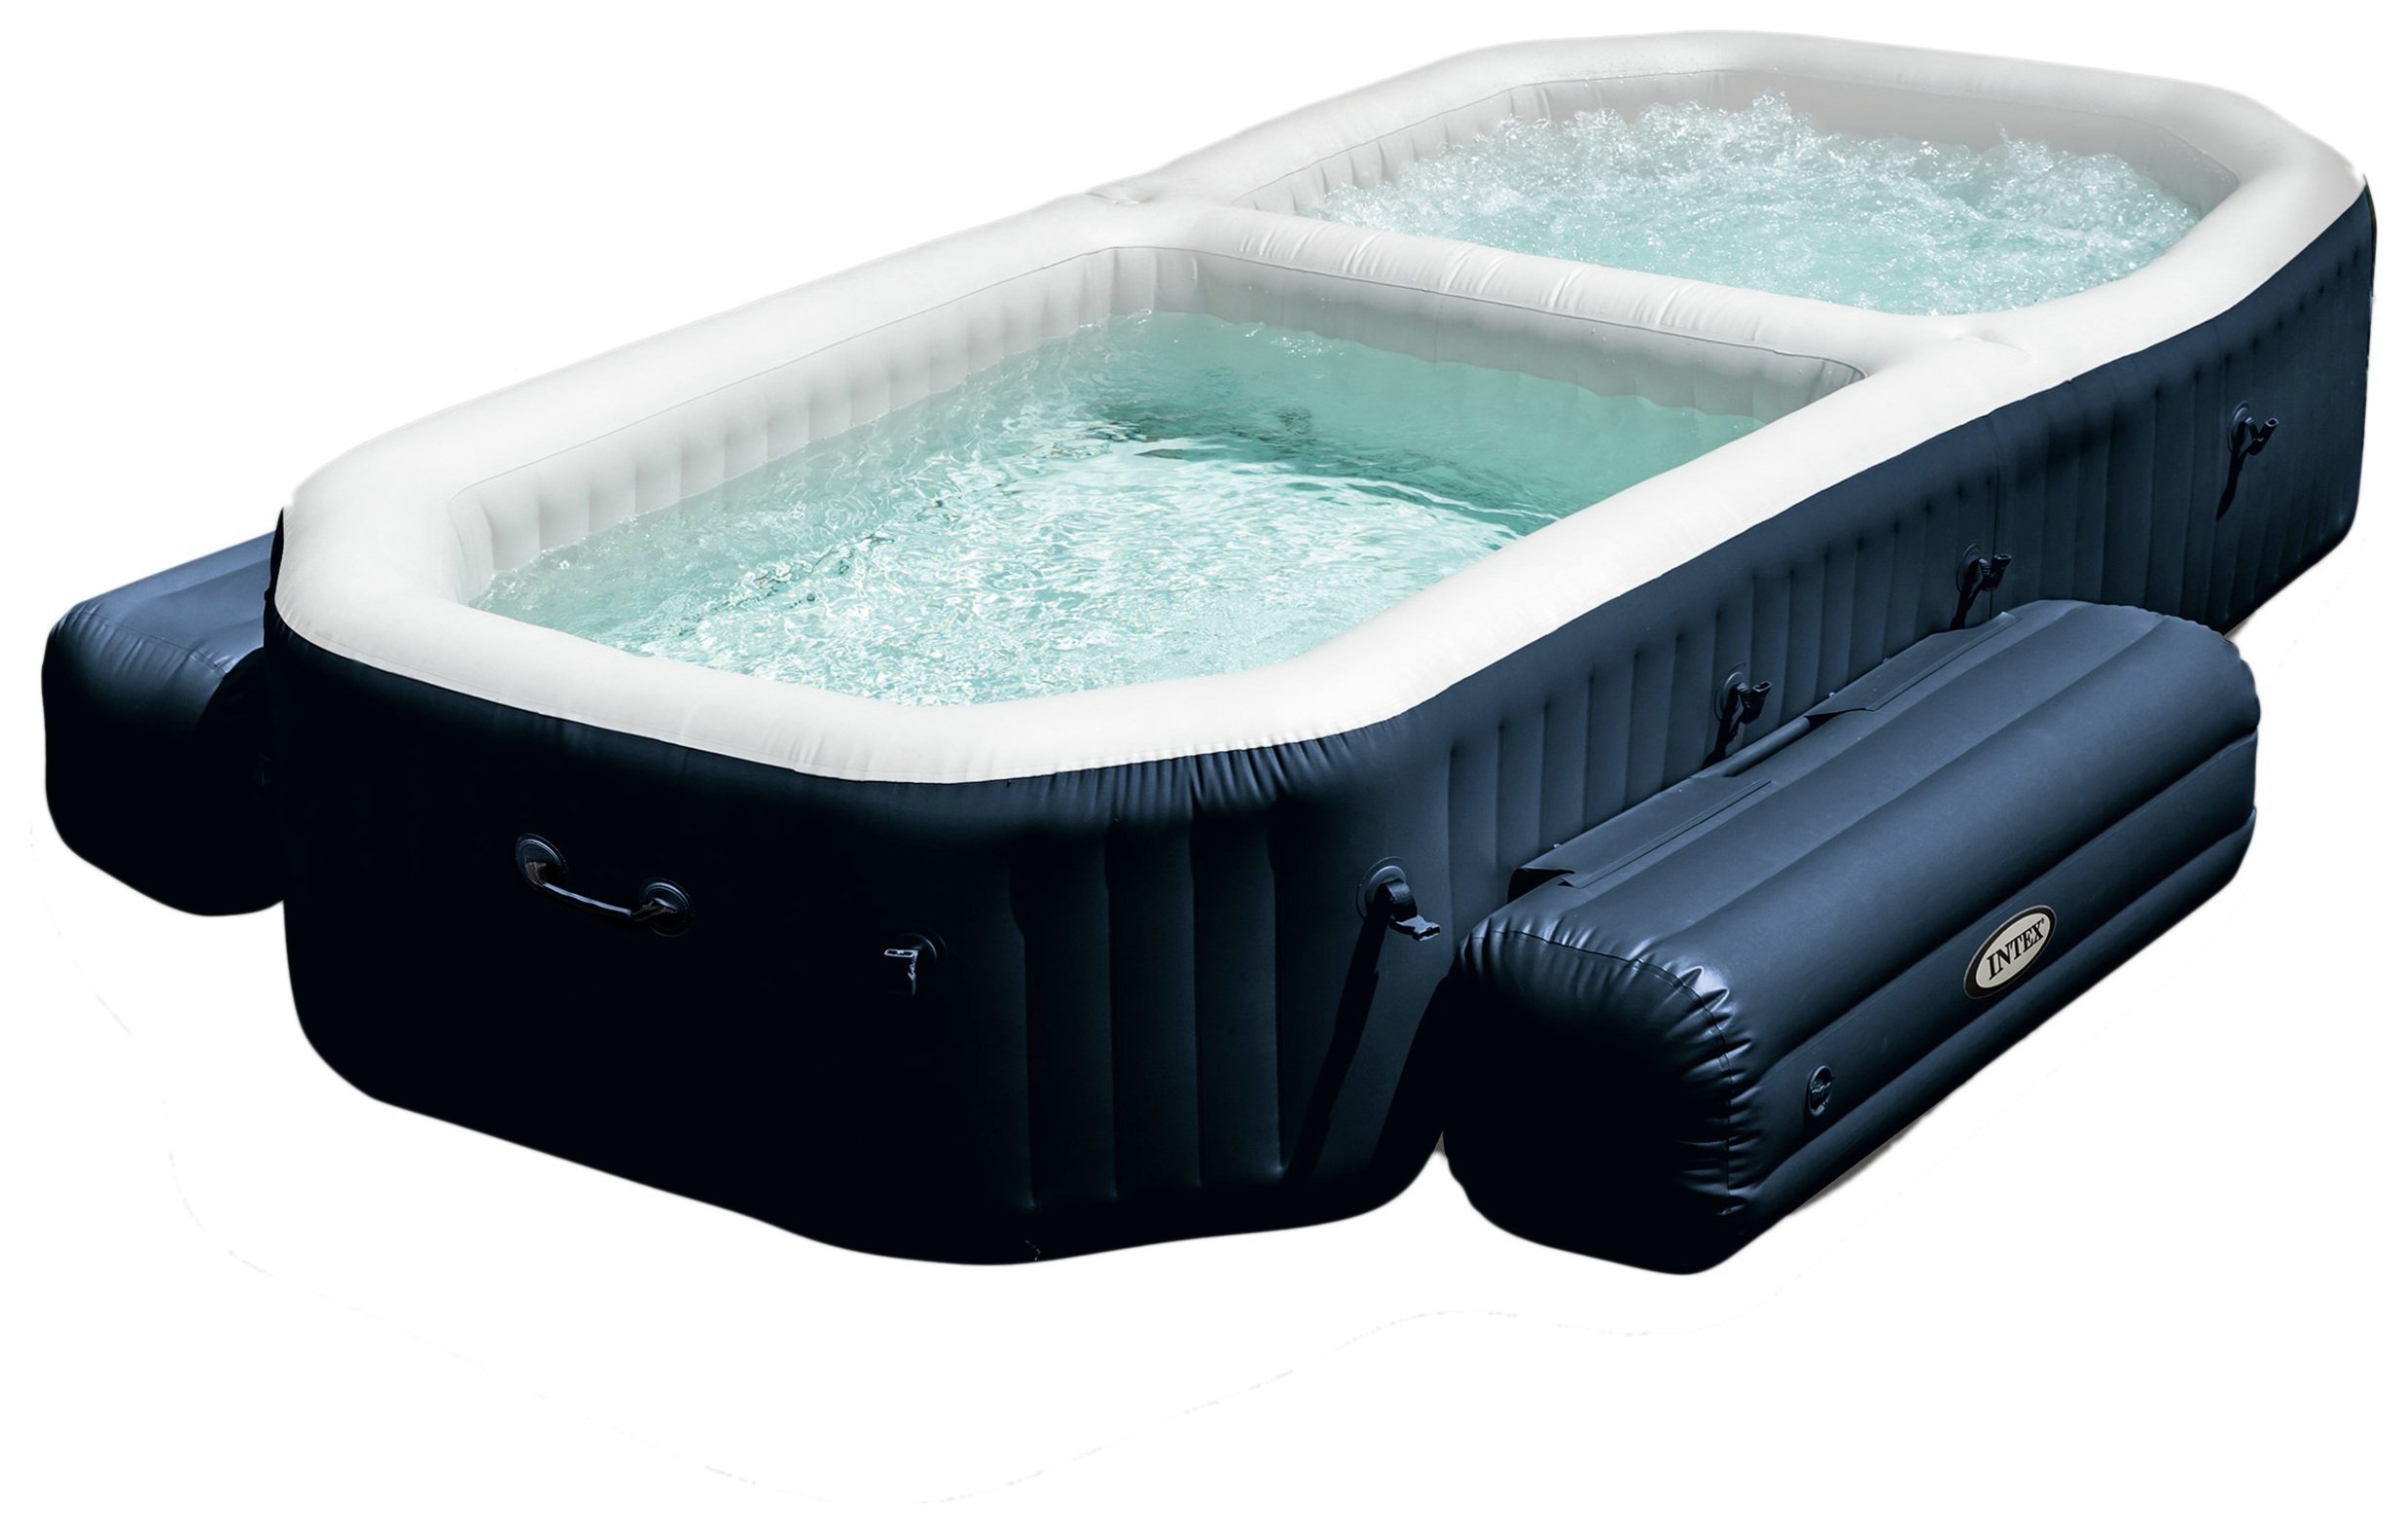 intex pure spa with plunge pool 1 octer. Black Bedroom Furniture Sets. Home Design Ideas